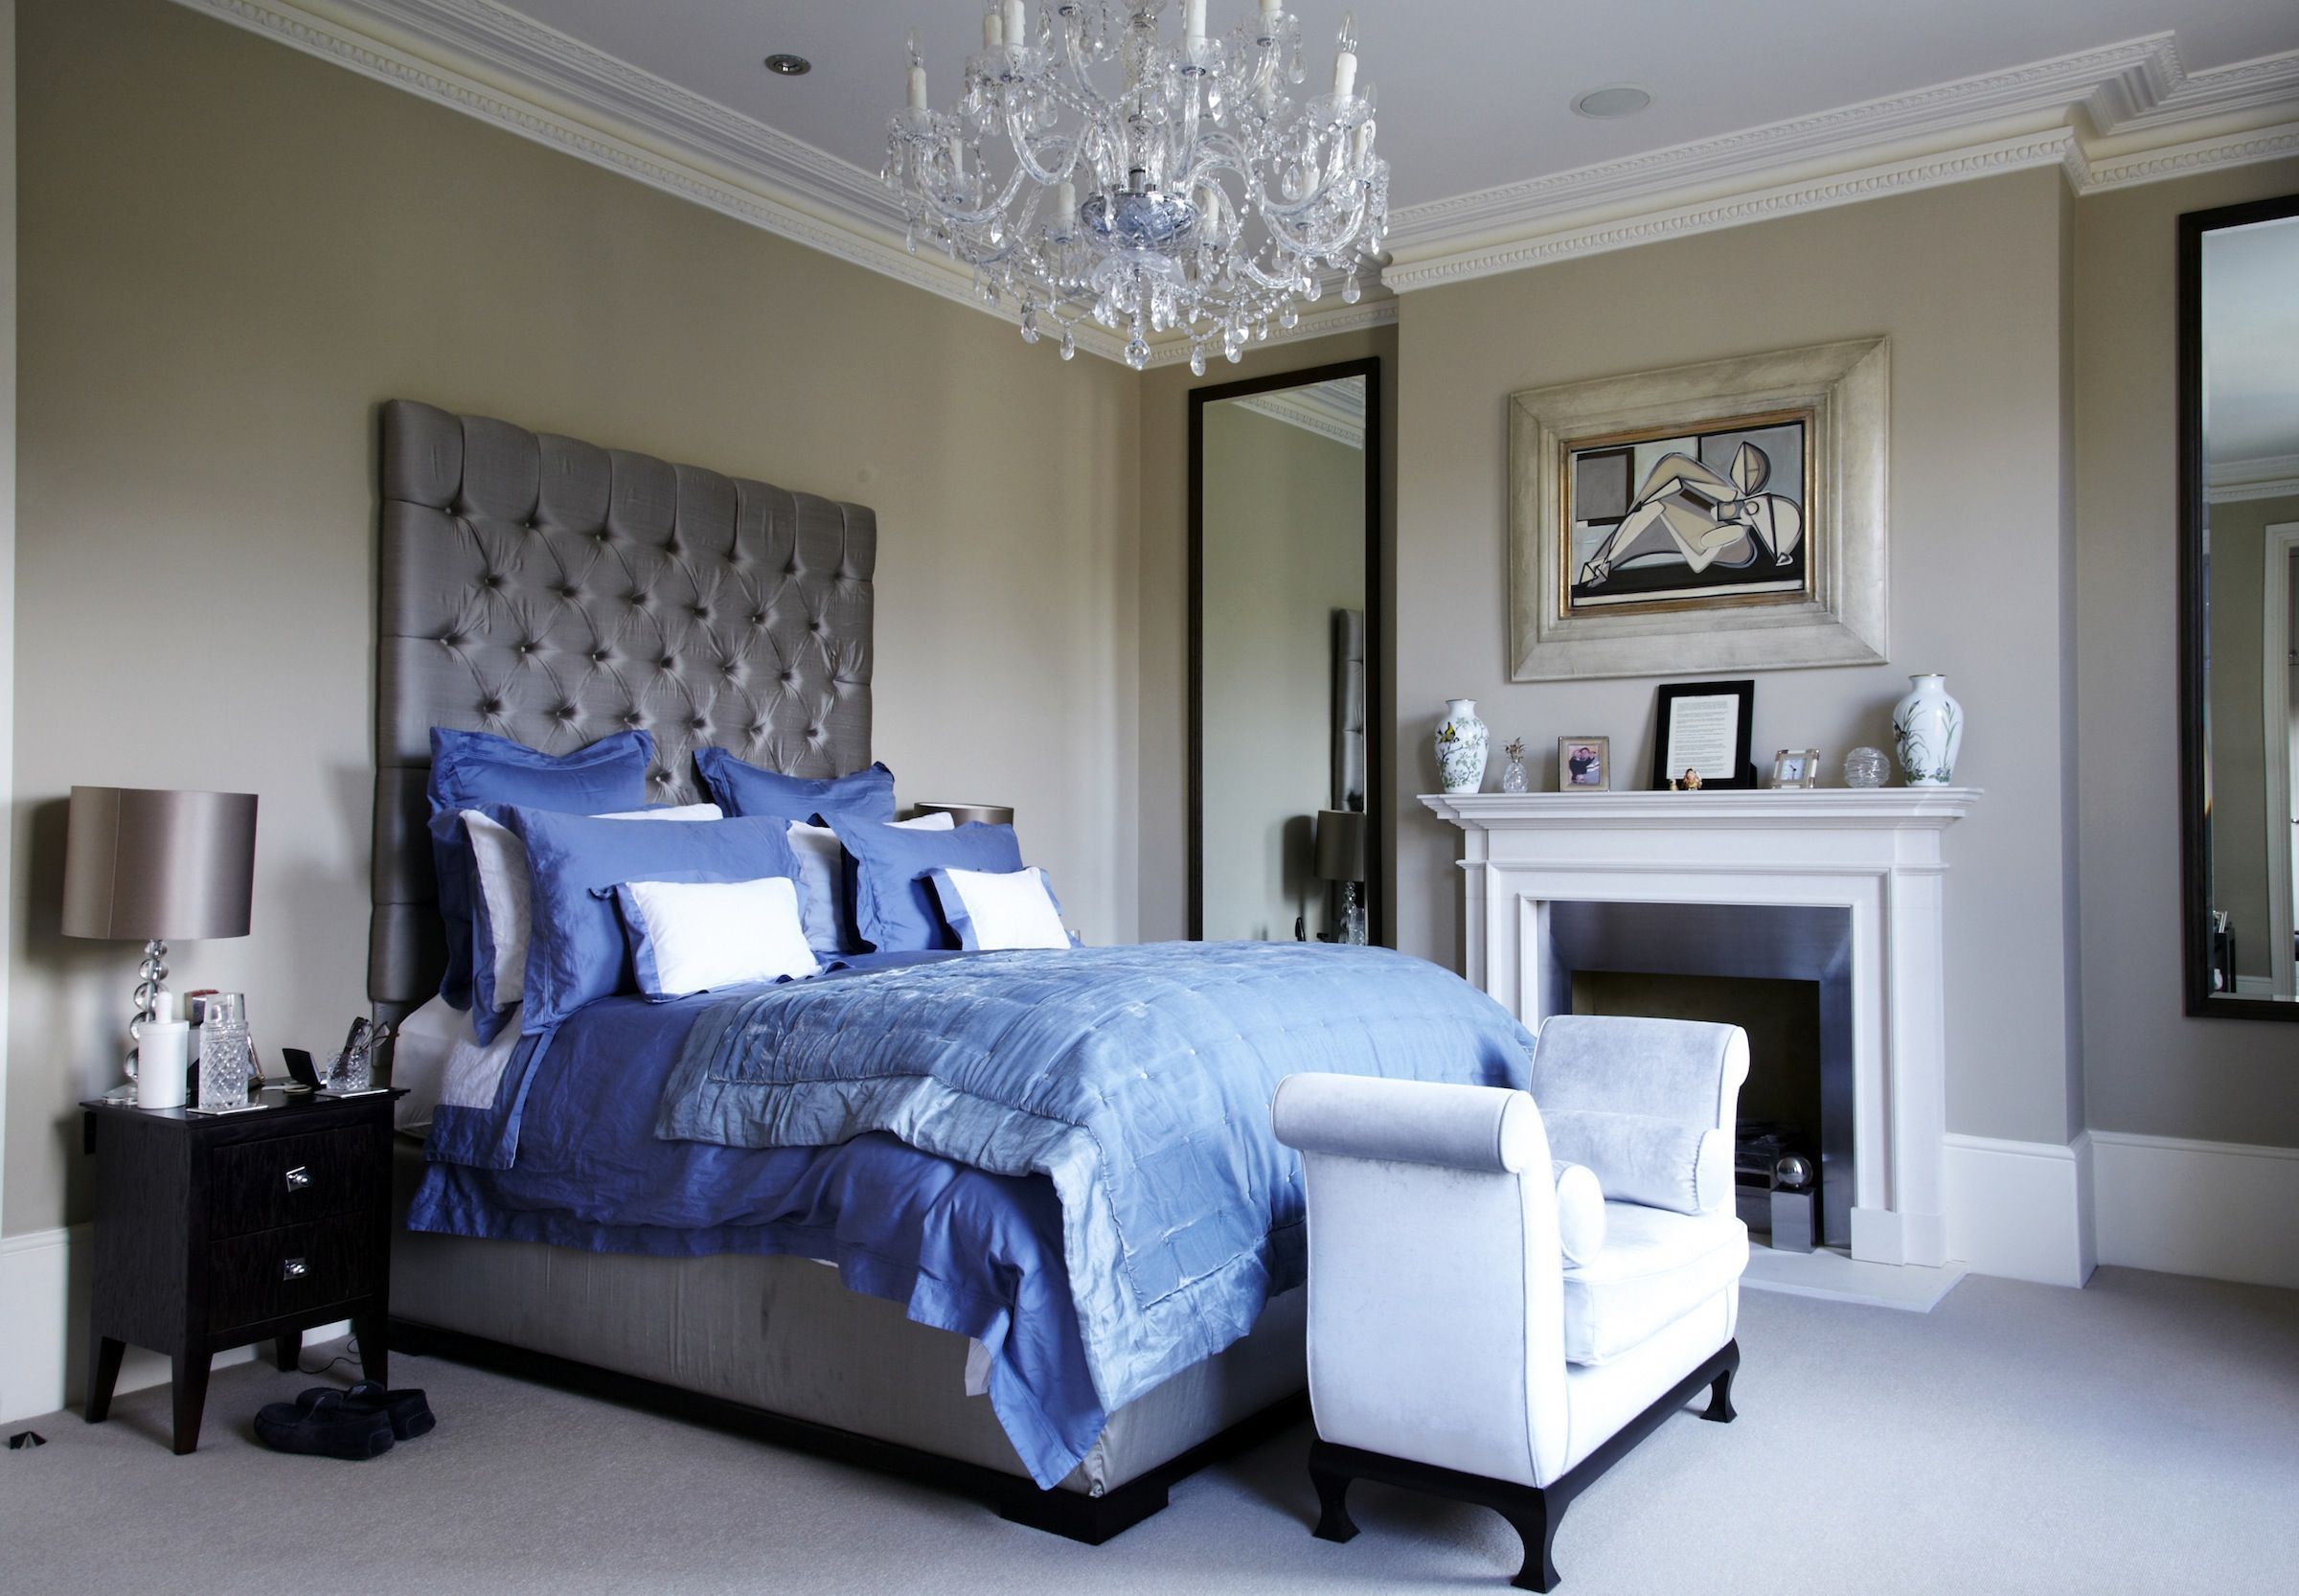 victorian chic house with a modern twist modern on home interior design bedroom id=58528